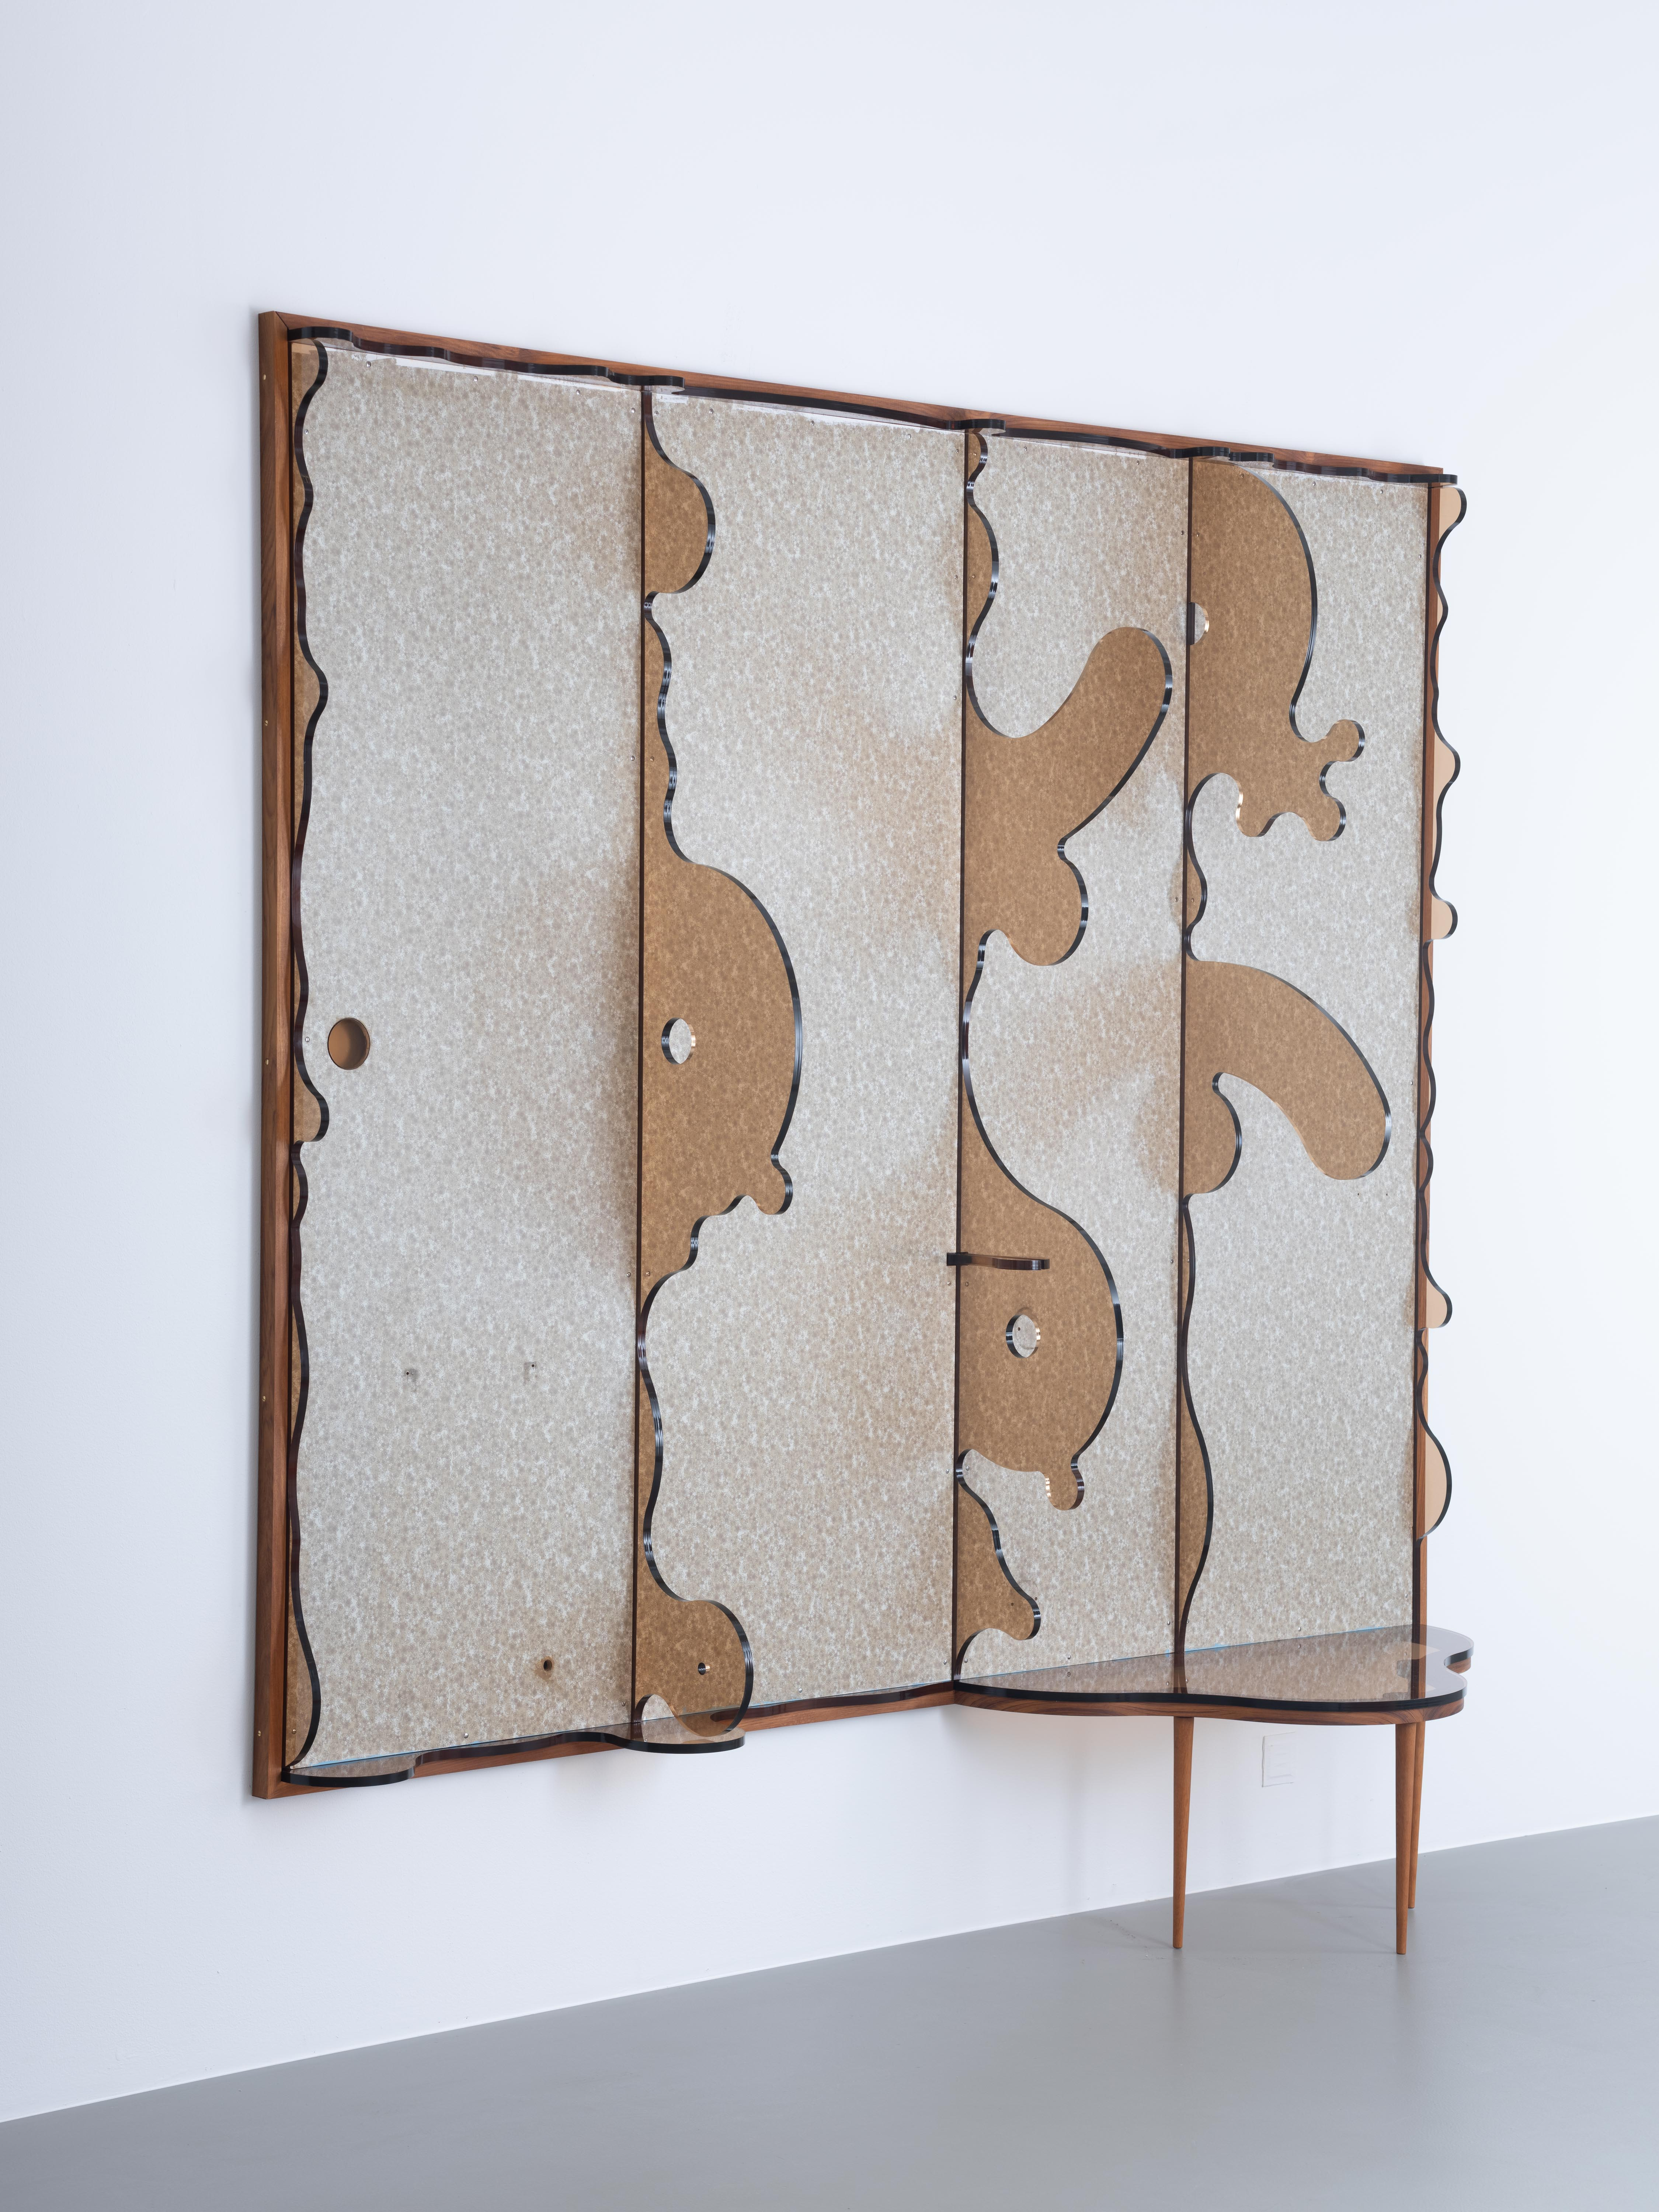 Clay Ketter, Persson's Dream, 2019, formica laminate on plywood, wood frame, laser-cut acrylic sheet, teak, hardware, 245 x 248 x 58 cm